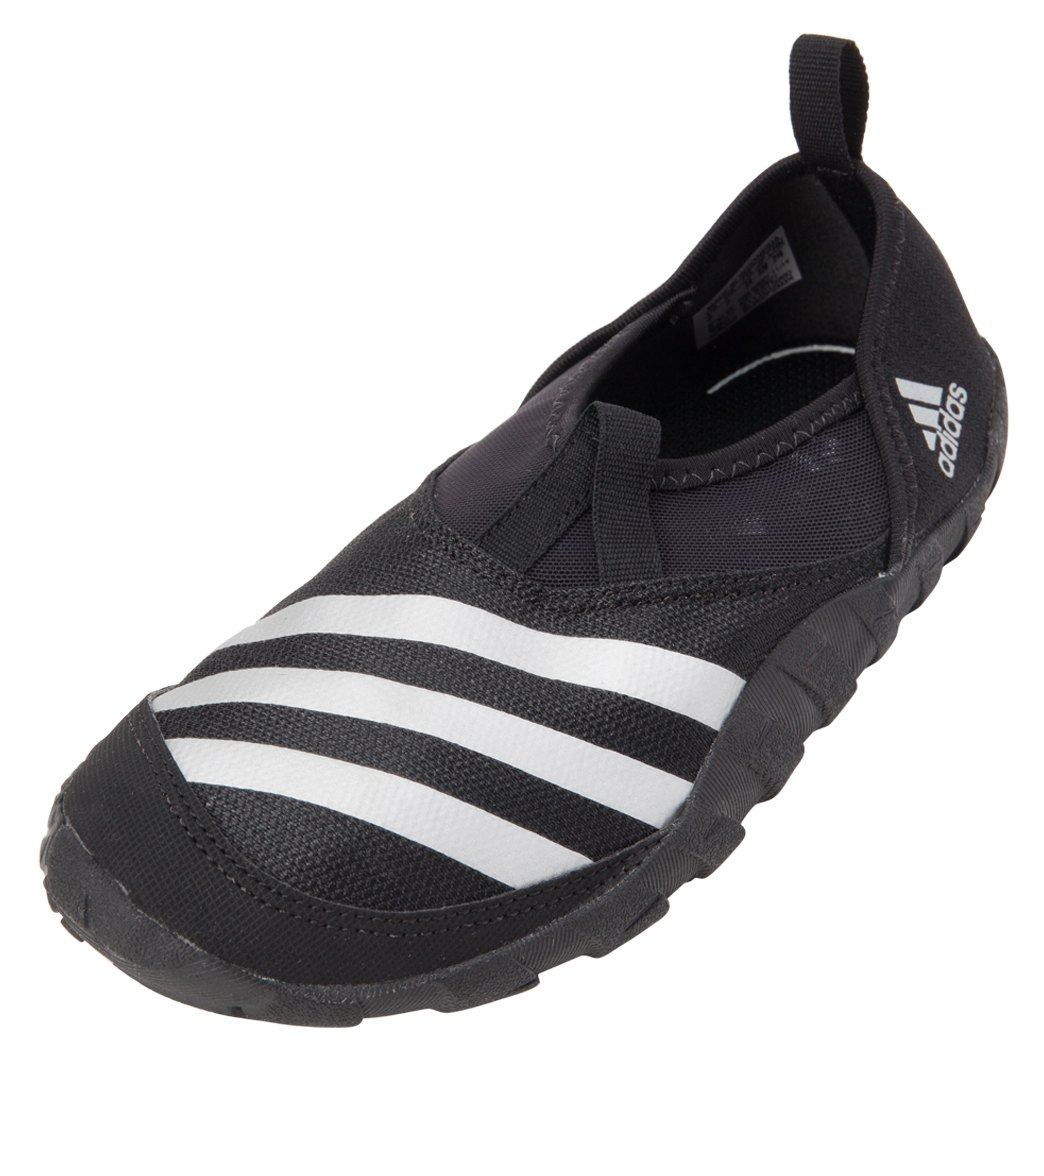 super popular d9112 b1ee3 Adidas Kids Jawpaw Water Shoes at SwimOutlet.com - Free Ship